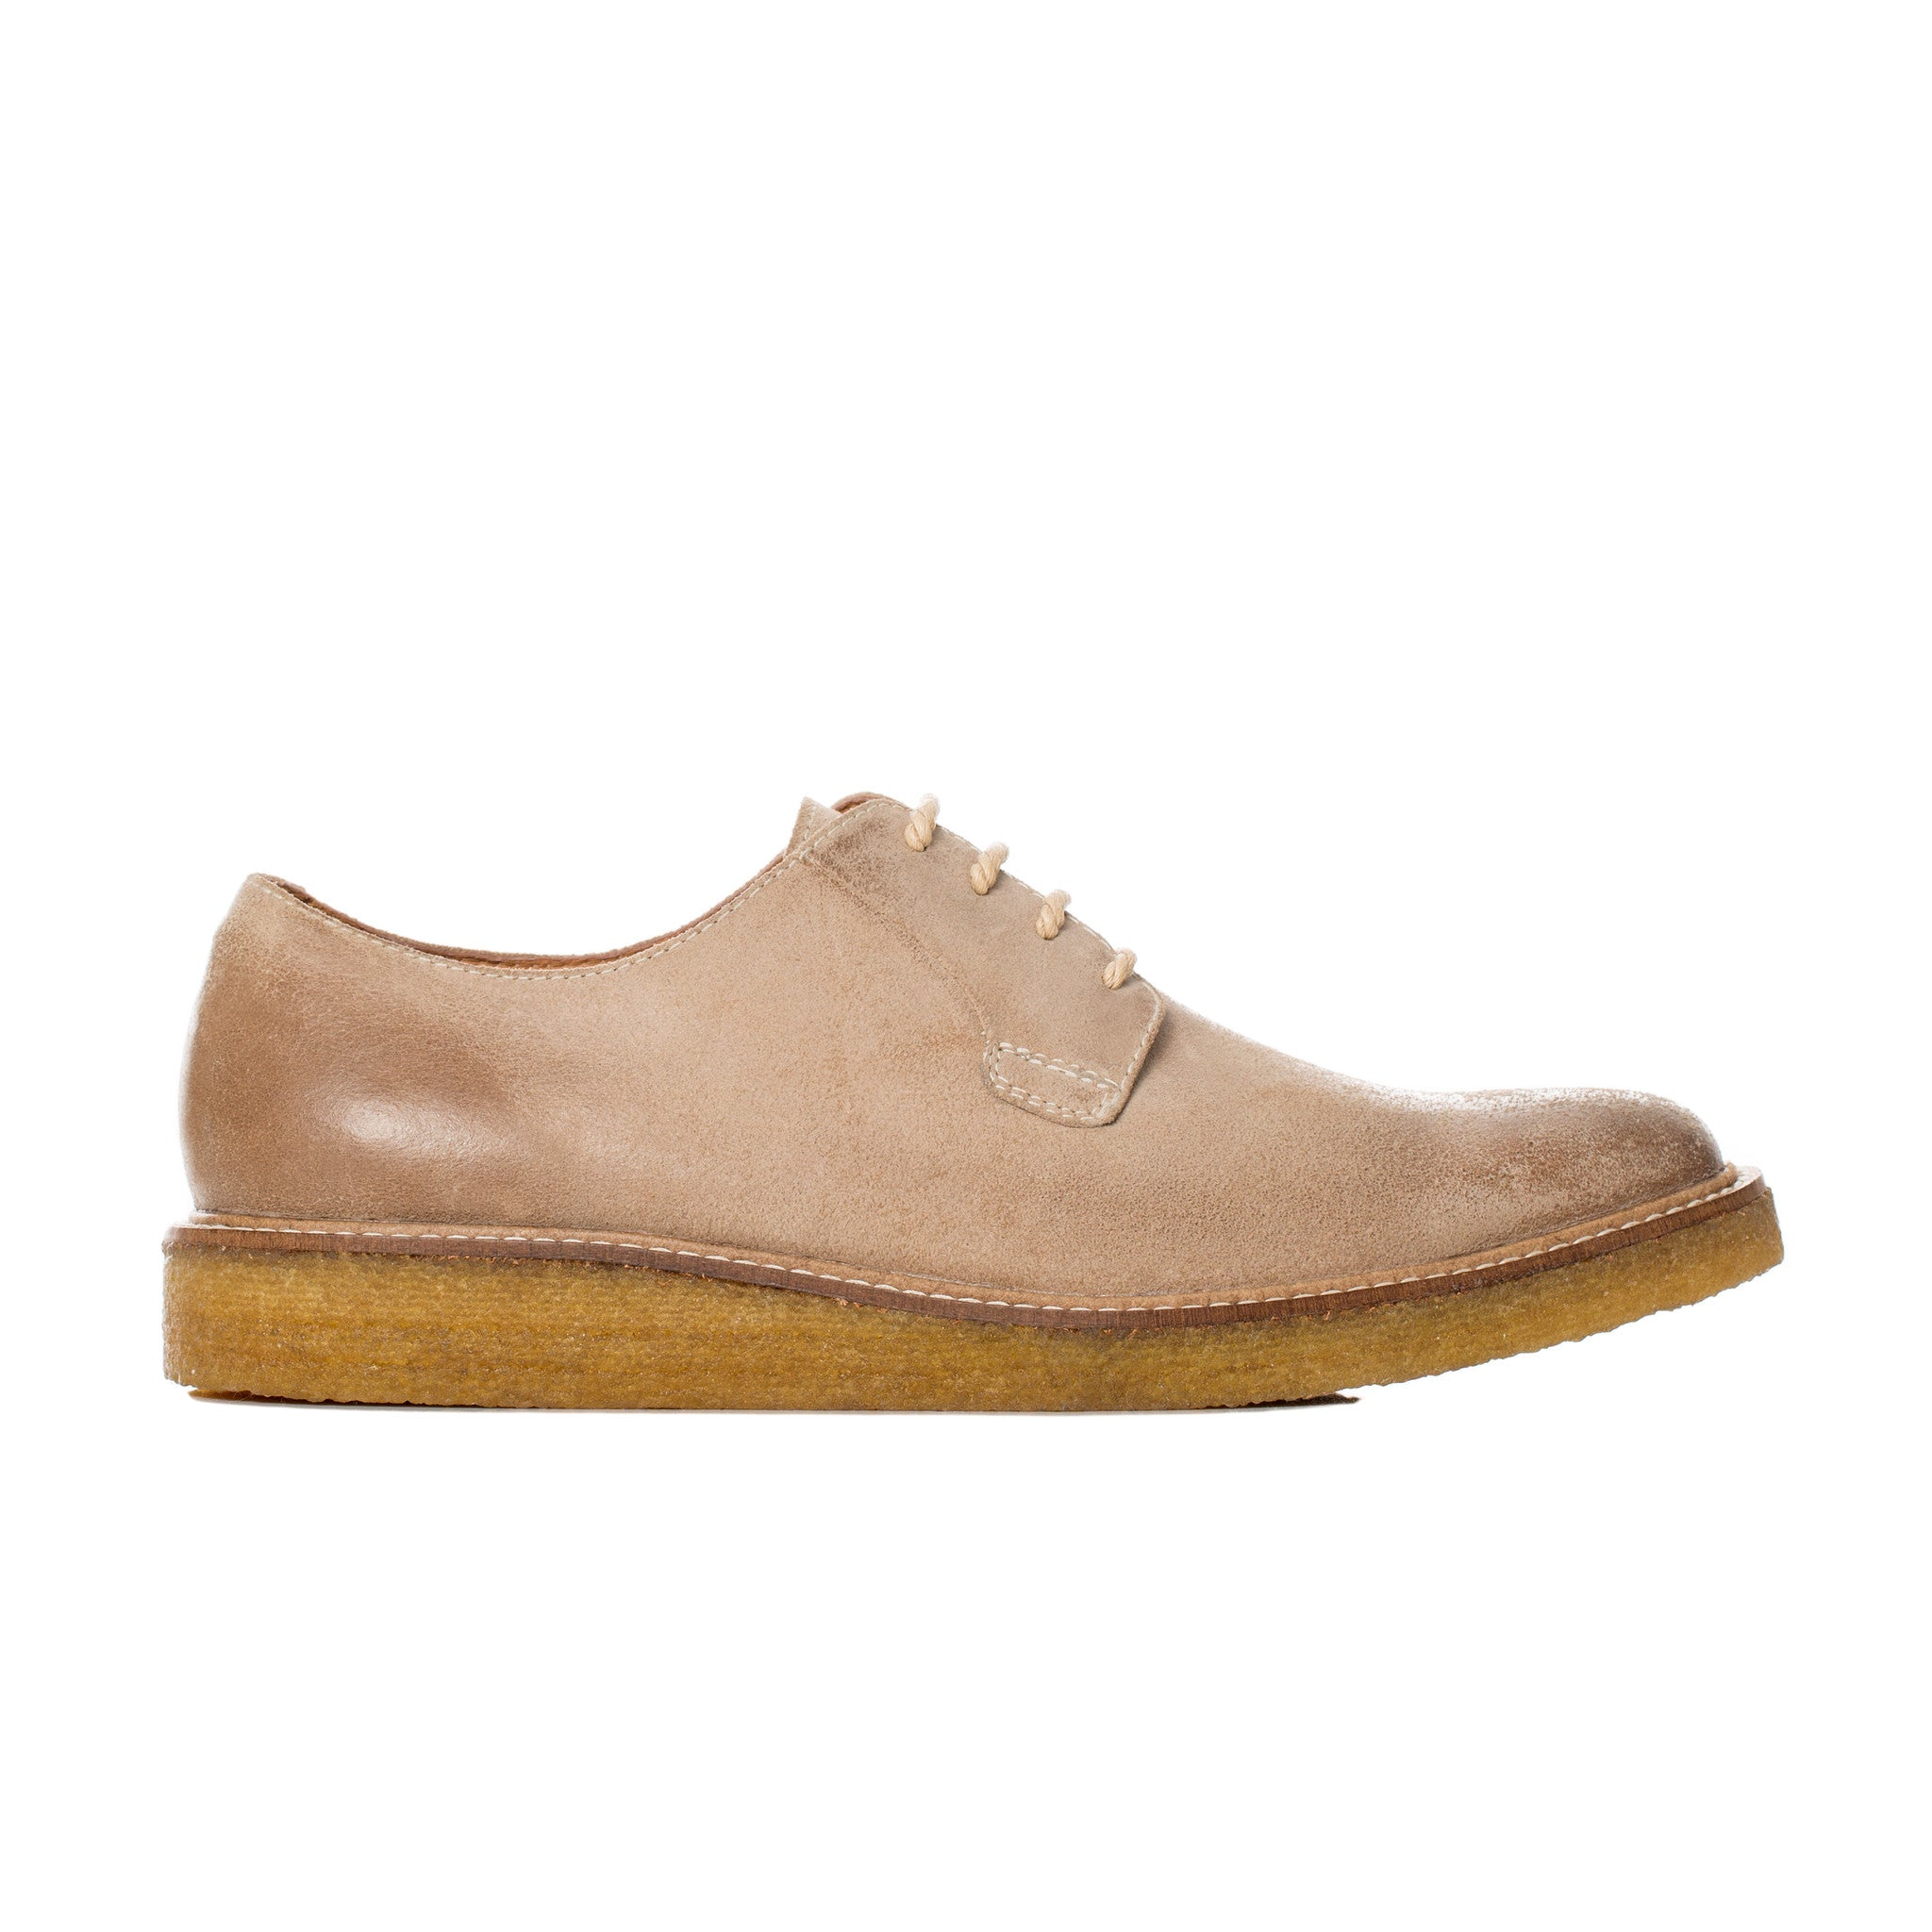 THE CHESTER - BEIGE